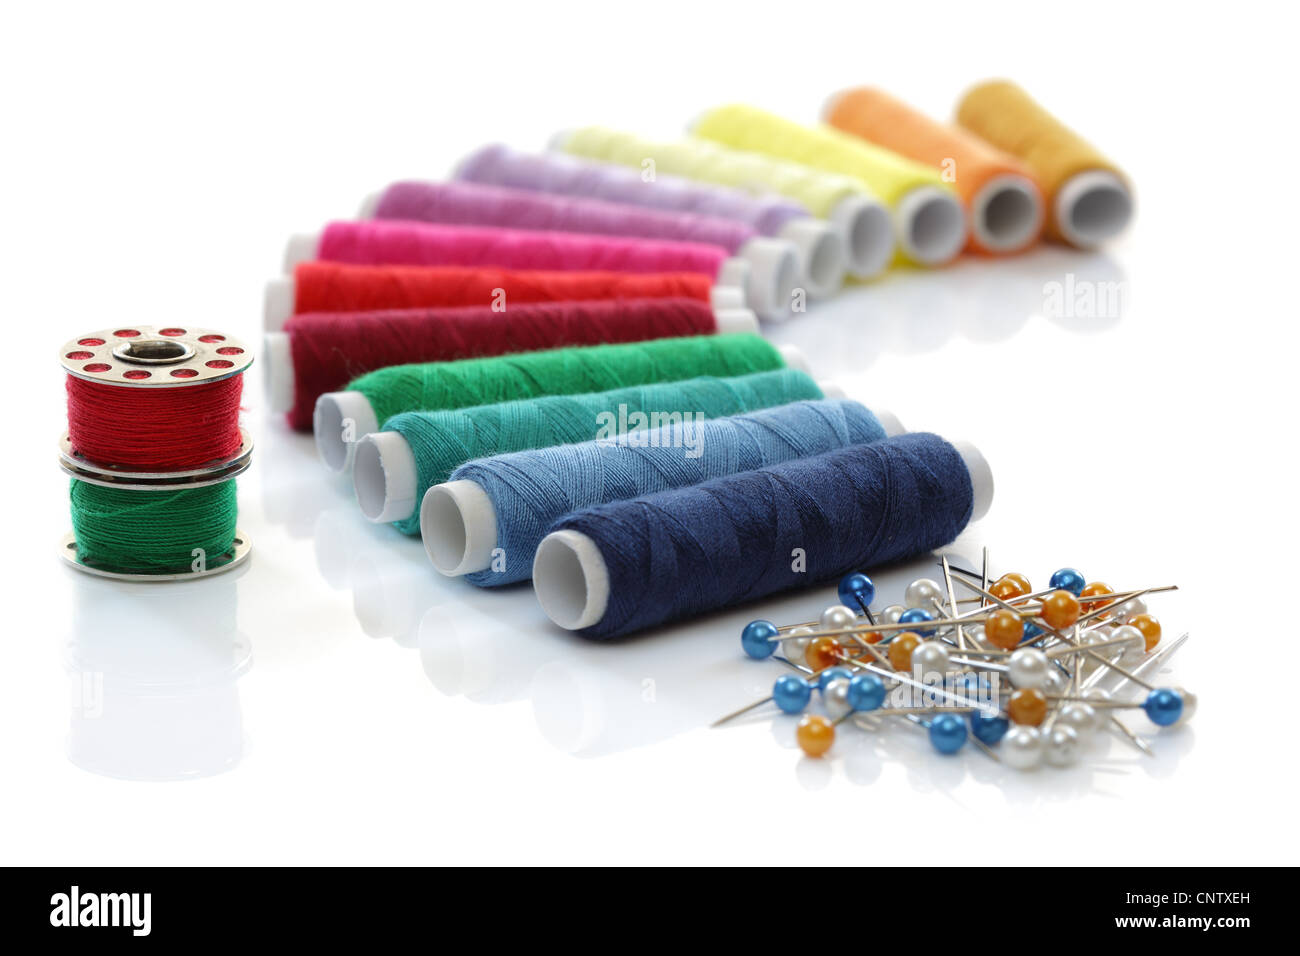 Sewing thread - Stock Image